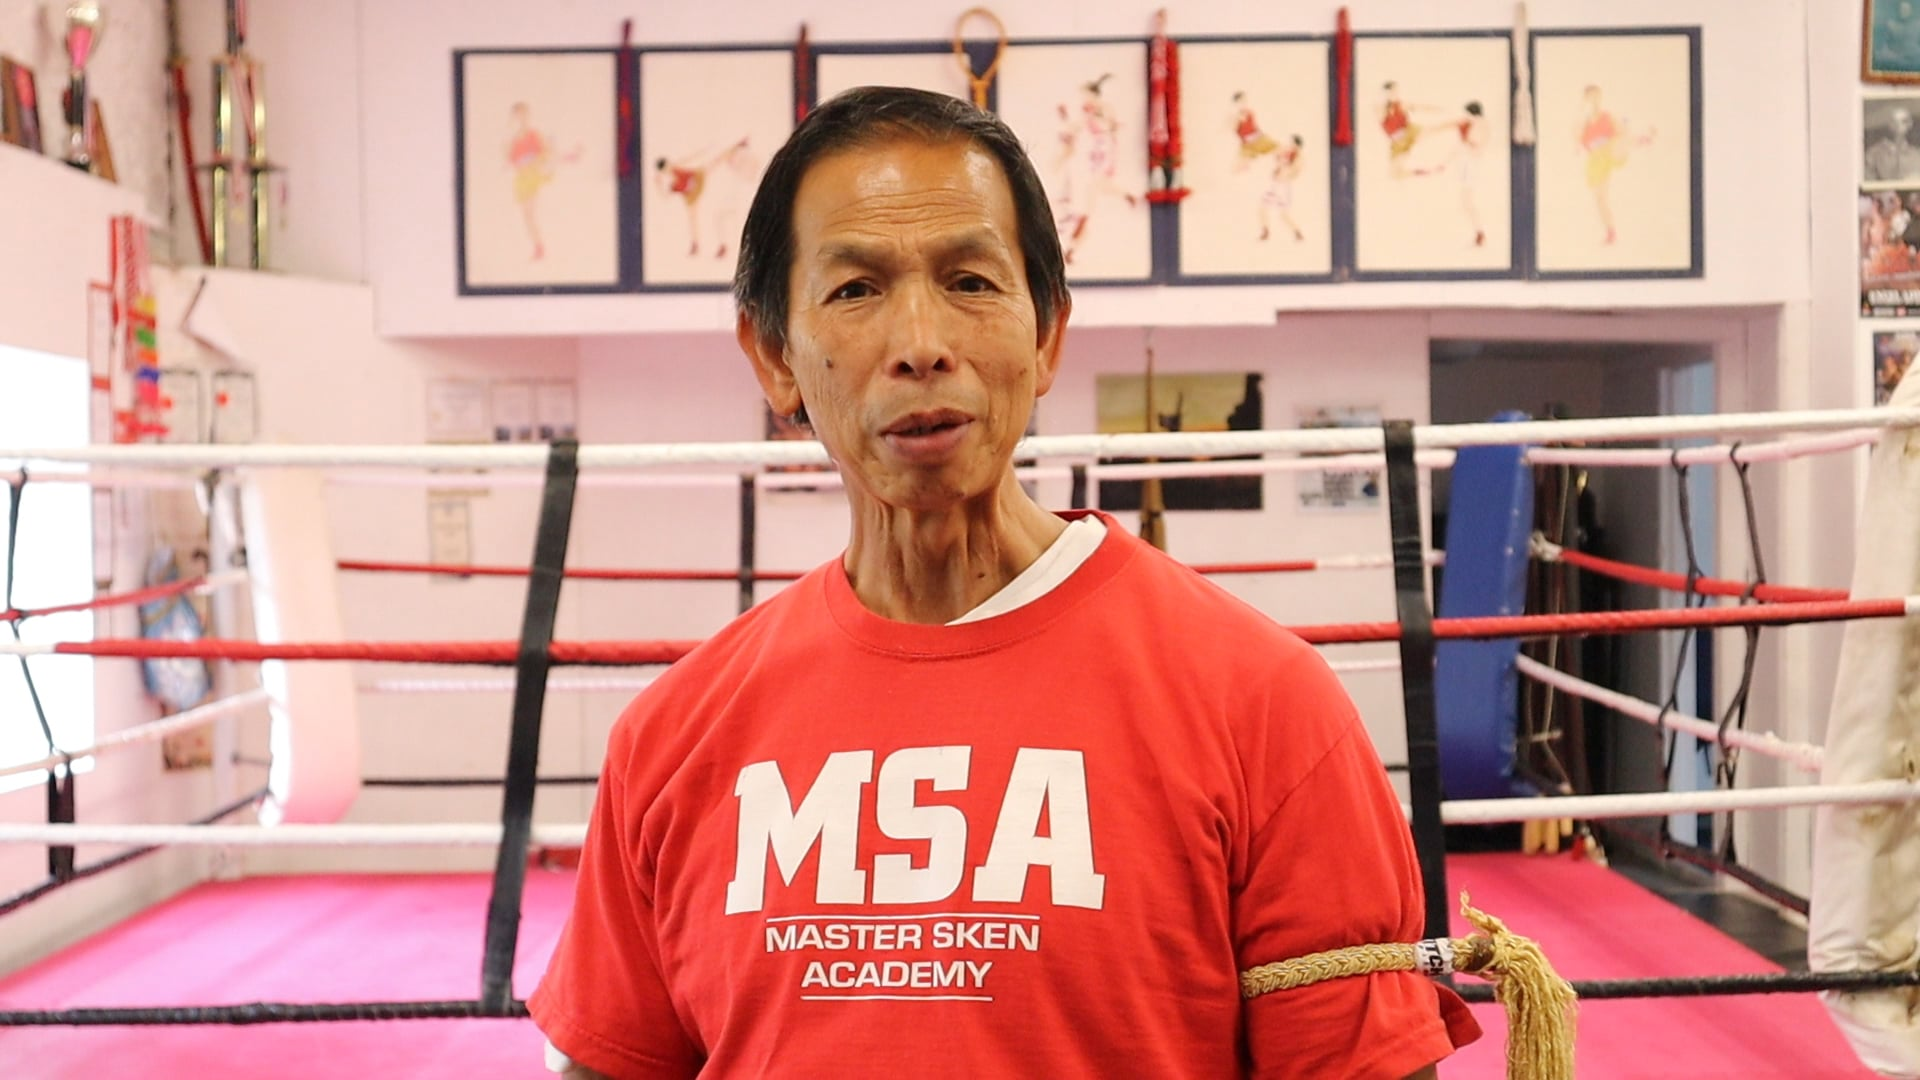 Why Train Muay Thai with Grand Master Sken